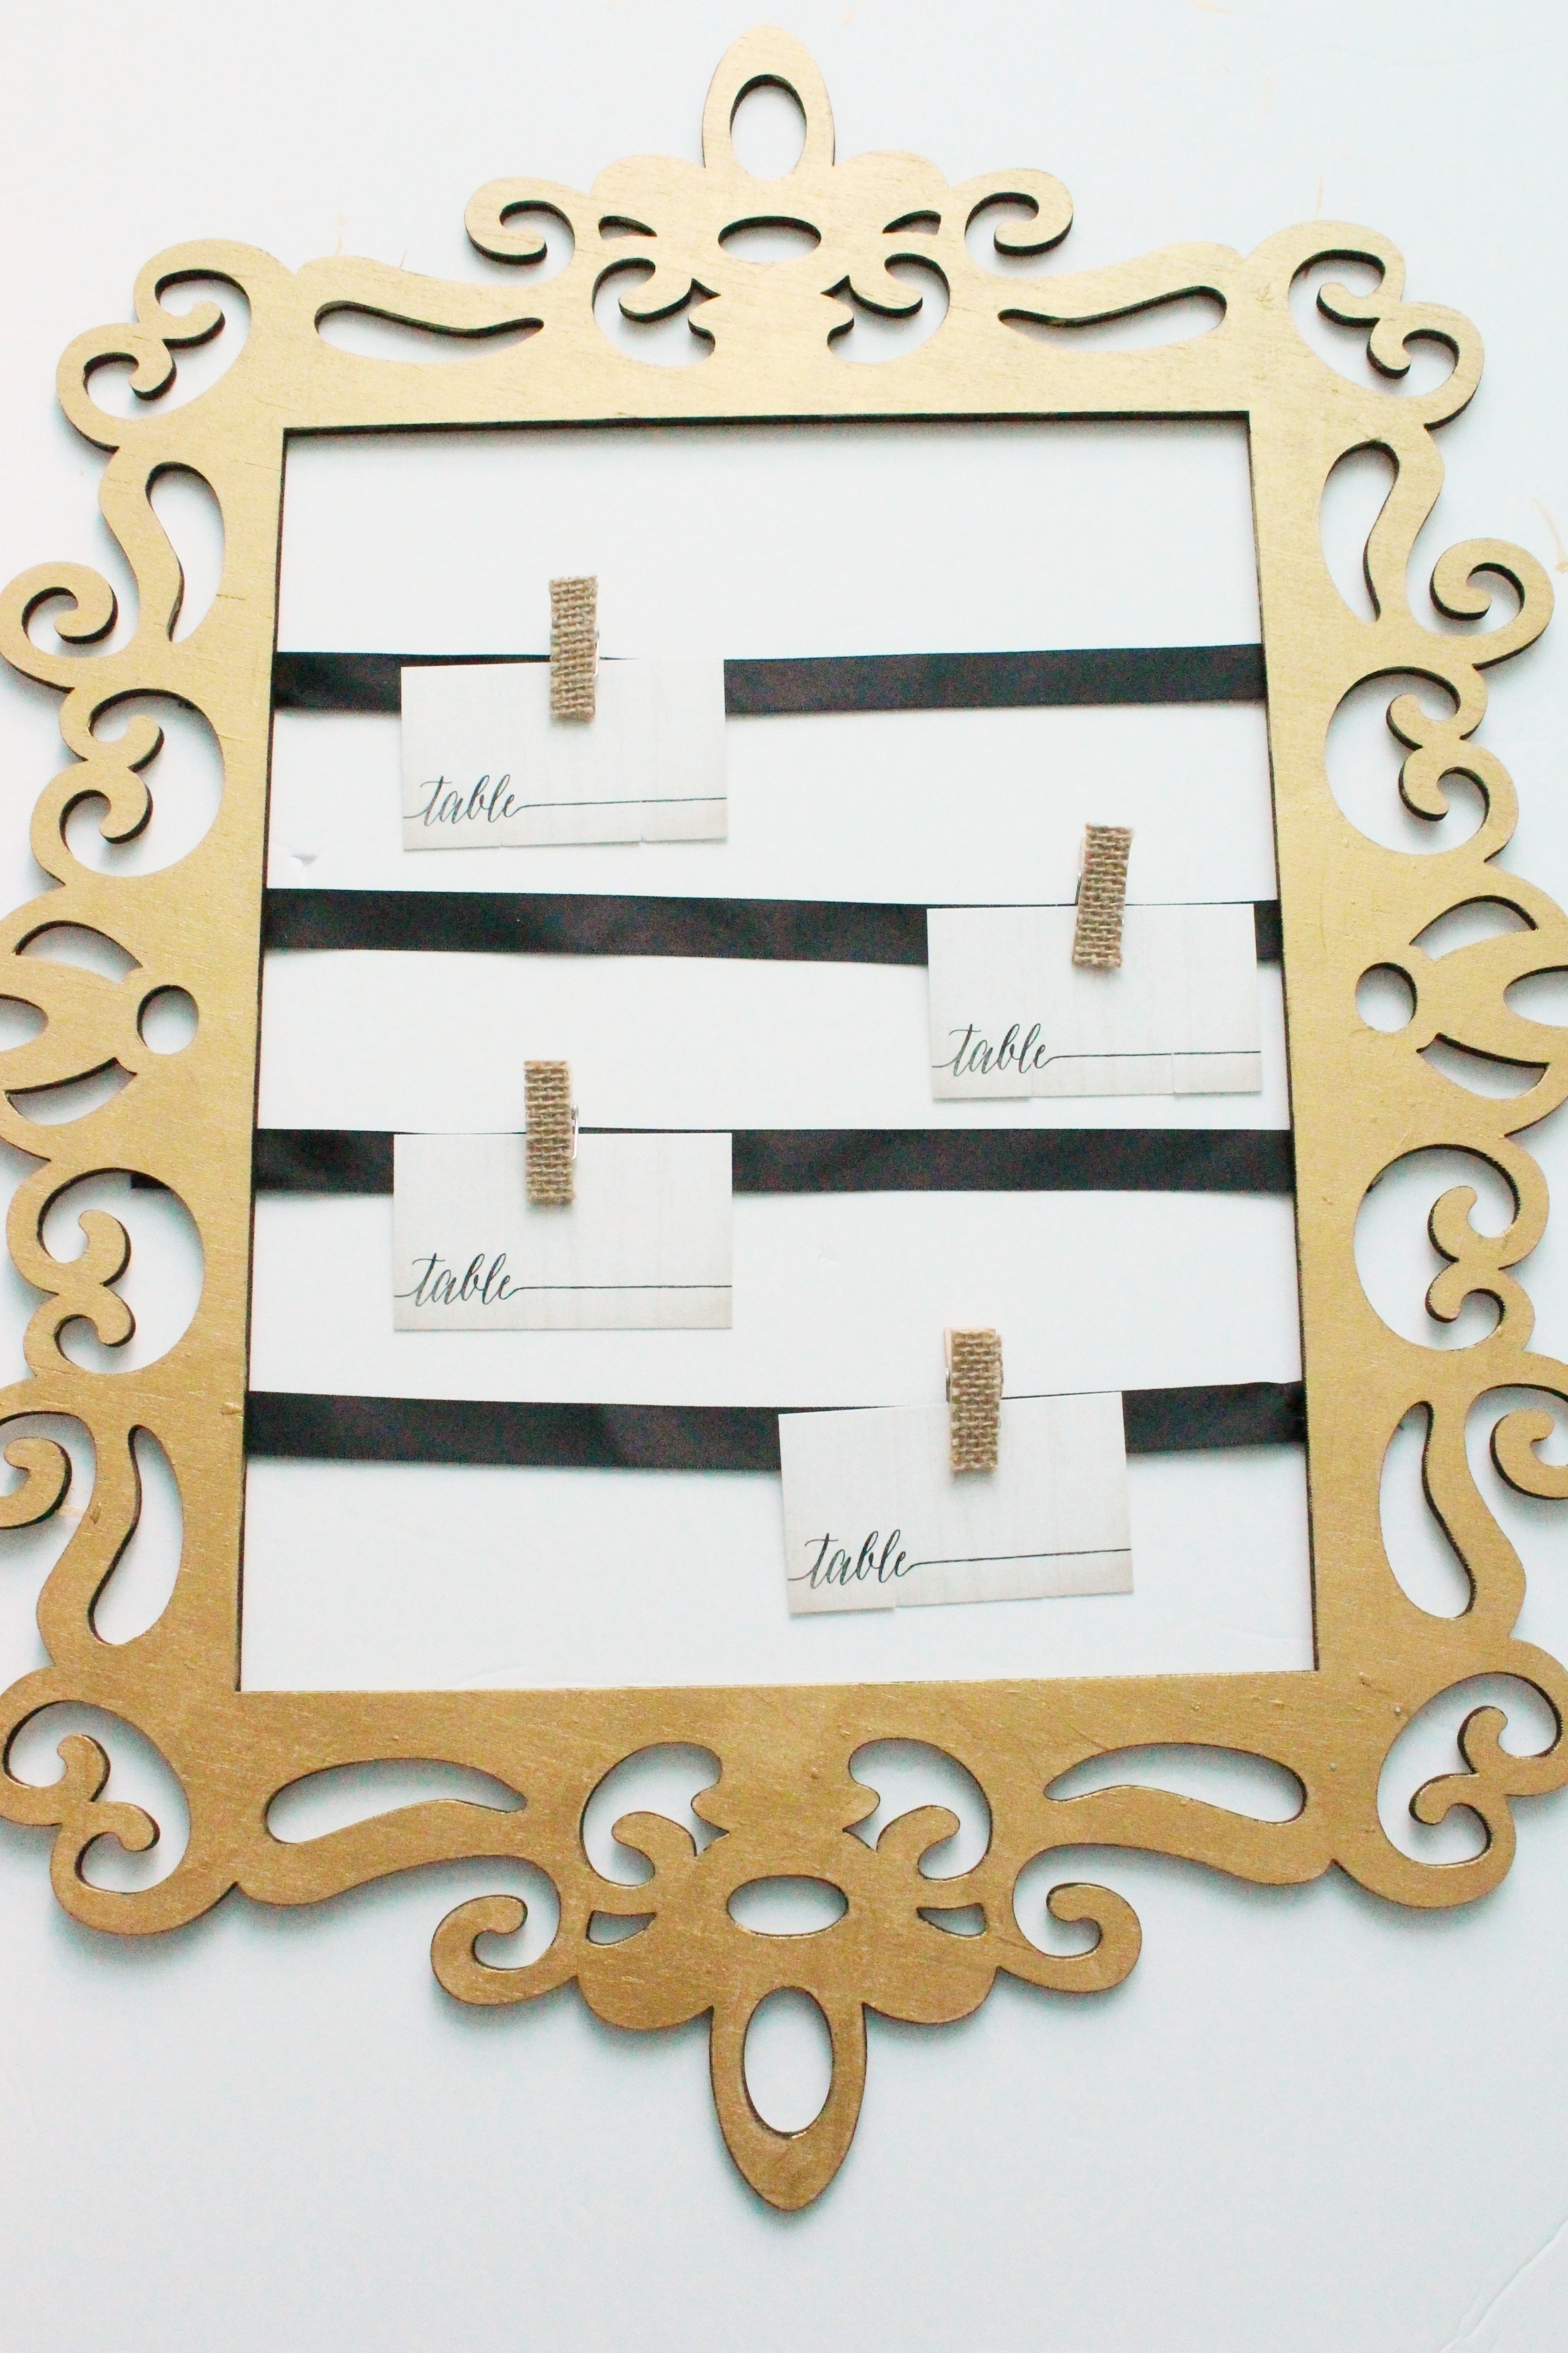 How To Create An Elegant Place Card Display Make A Framed